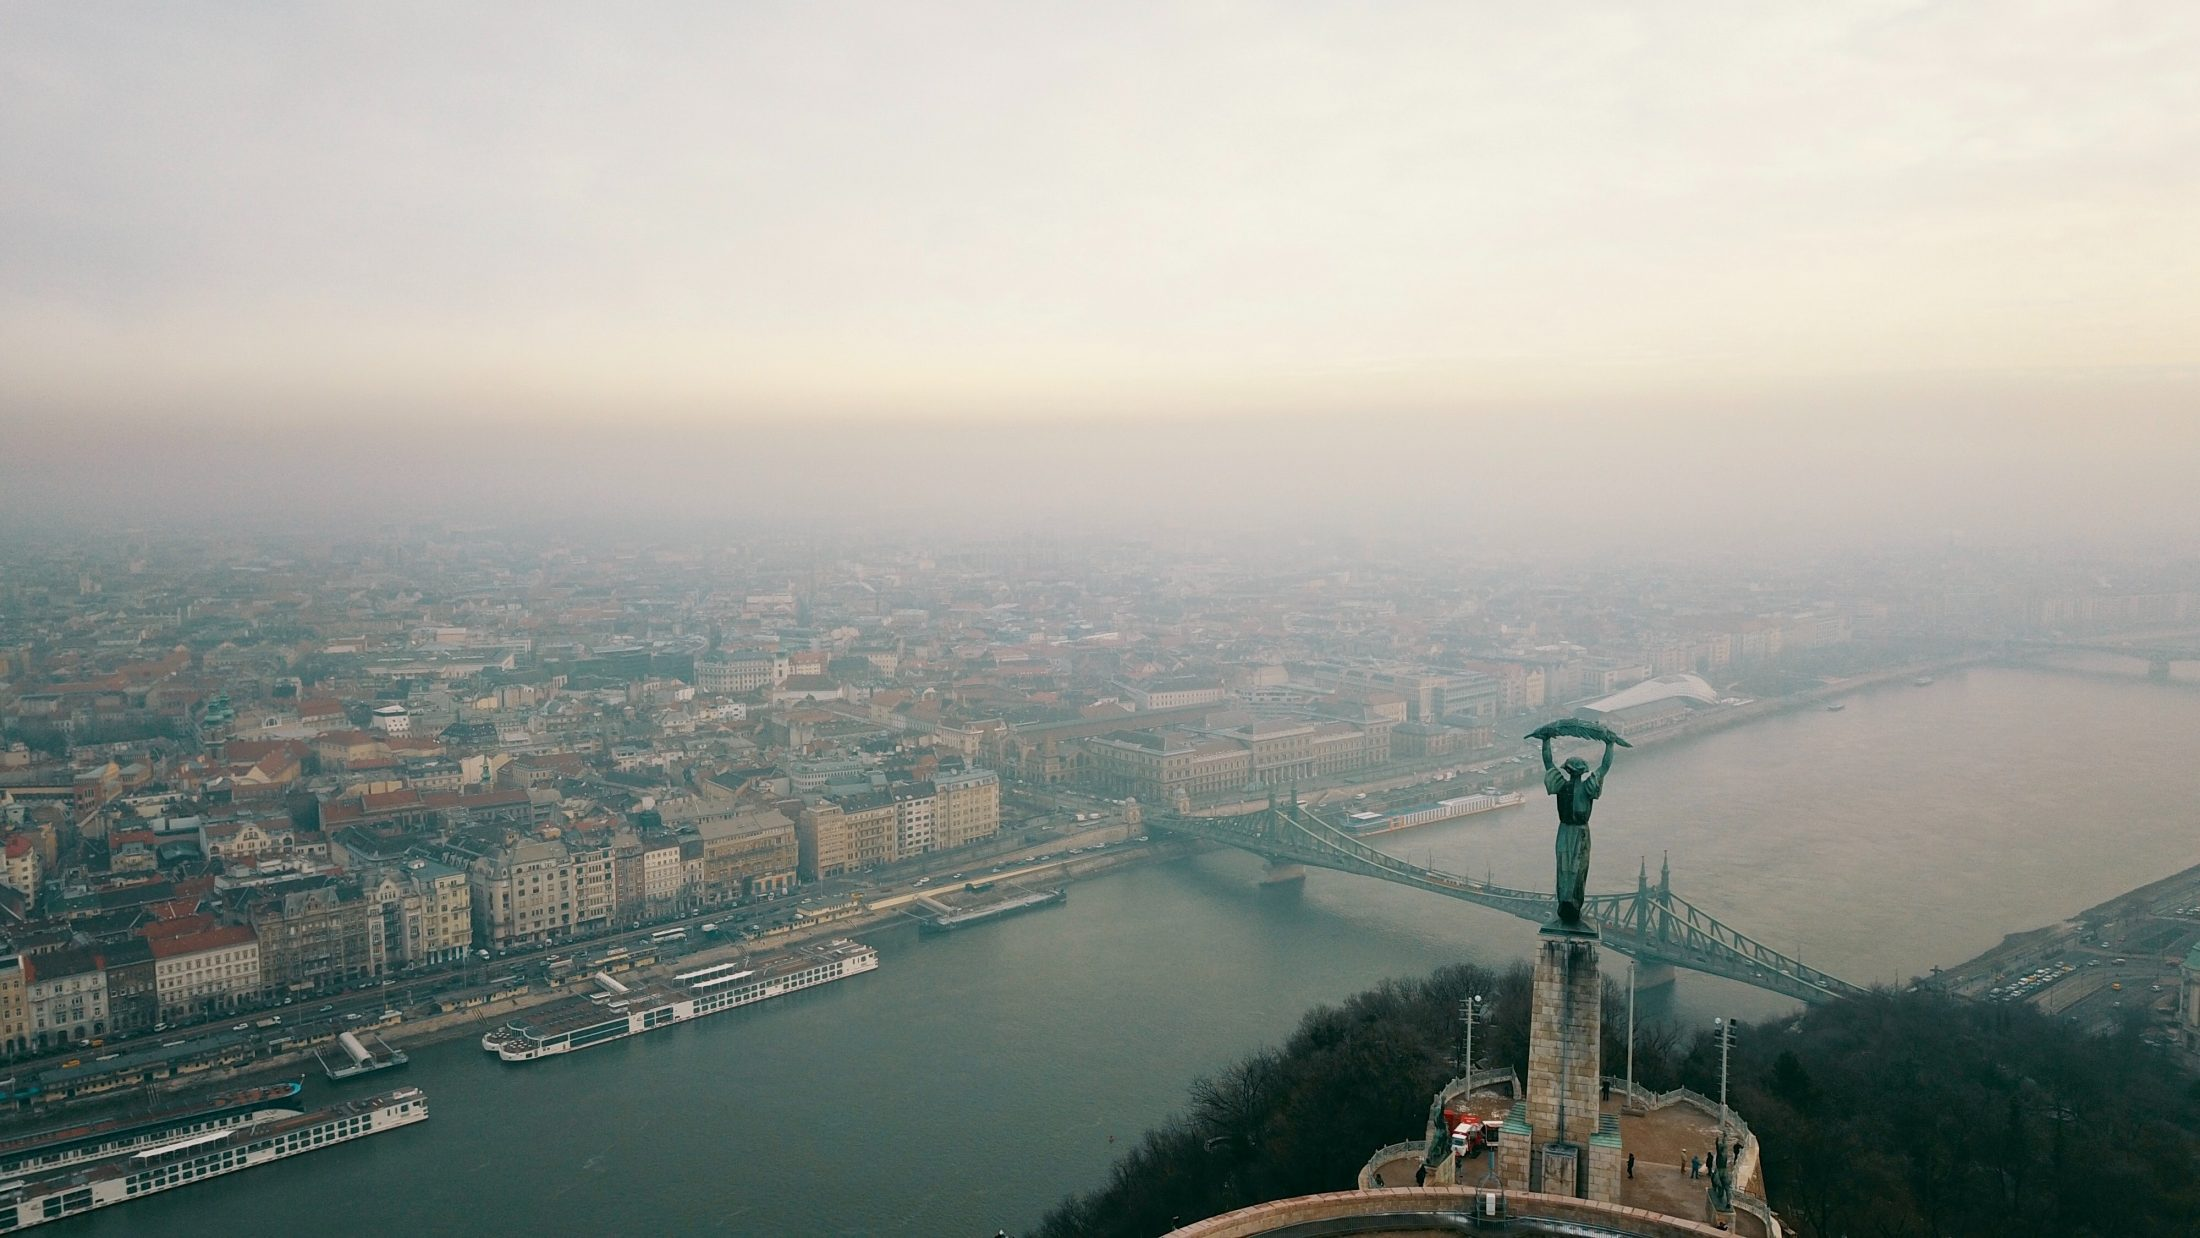 Budapest aerial view by Eli Levit